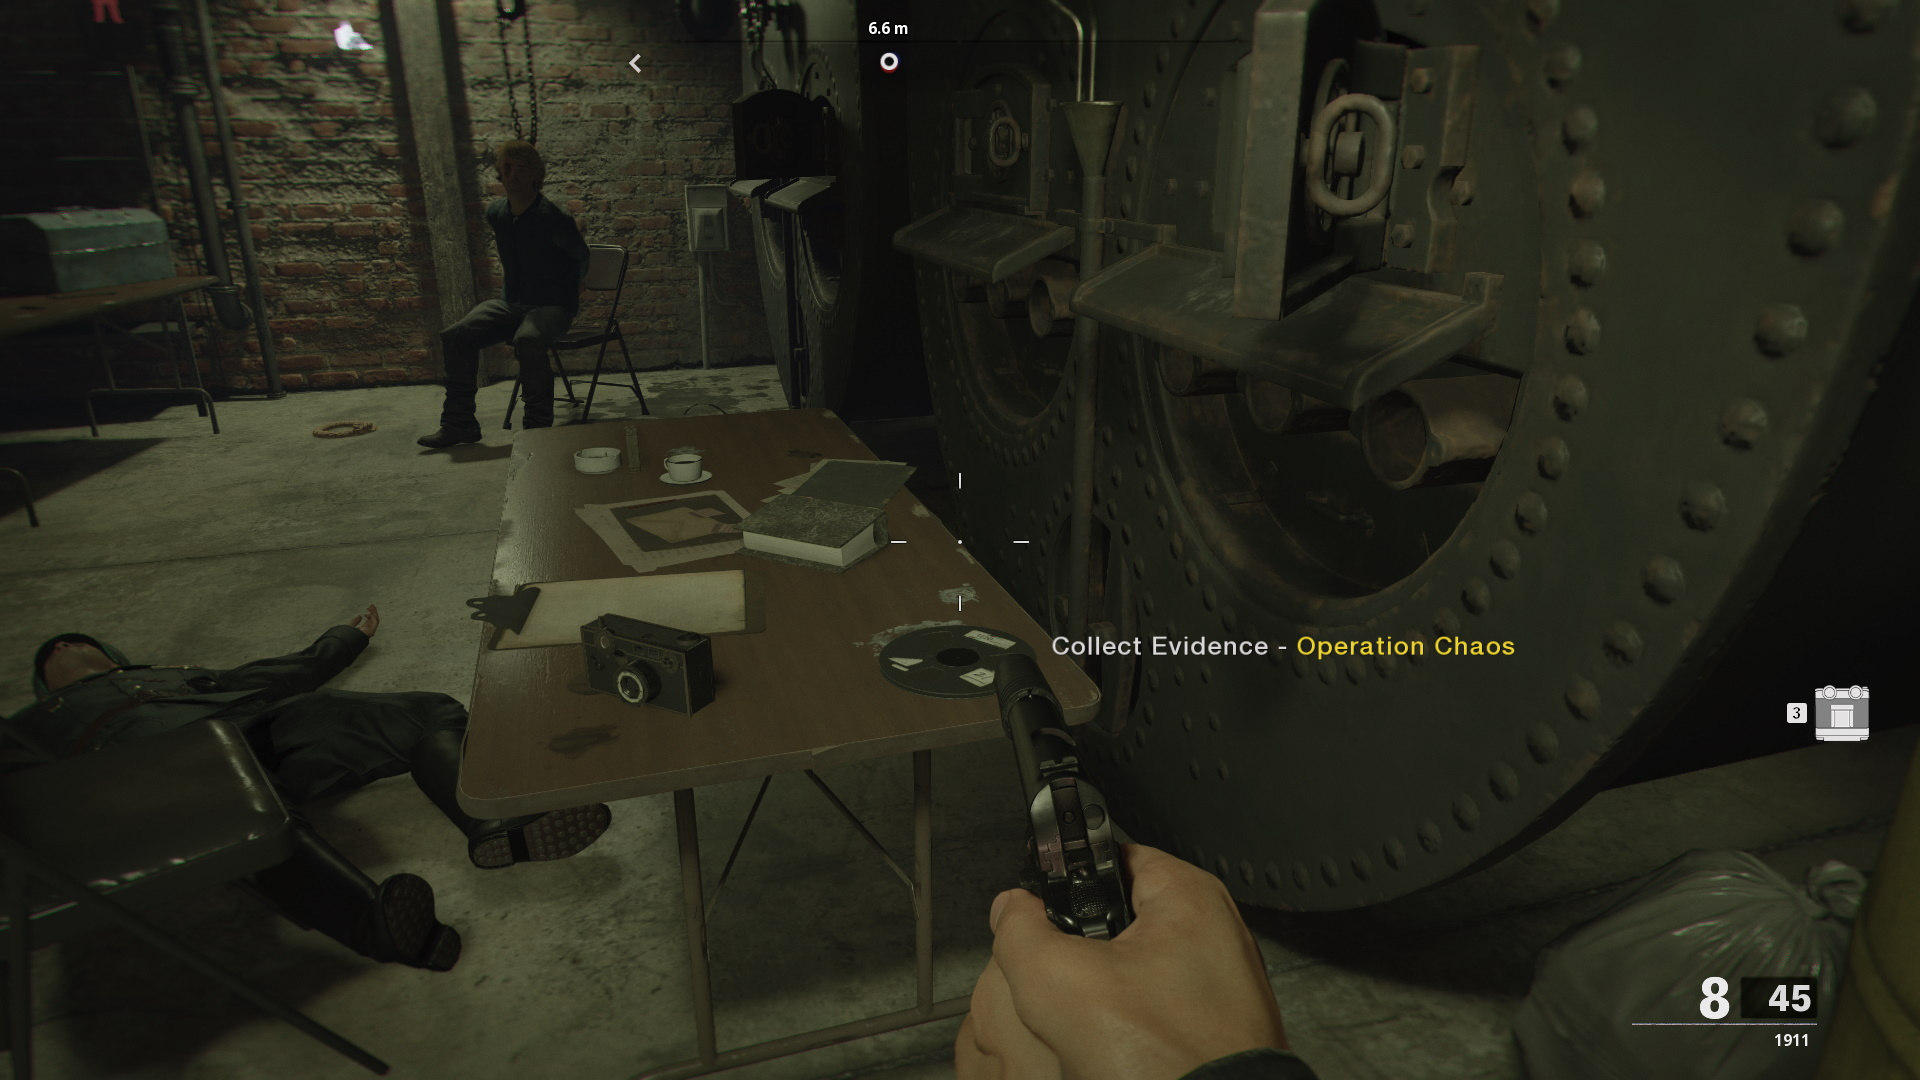 Brick in the Wall evidence location on table in bunker for Operation Chaos